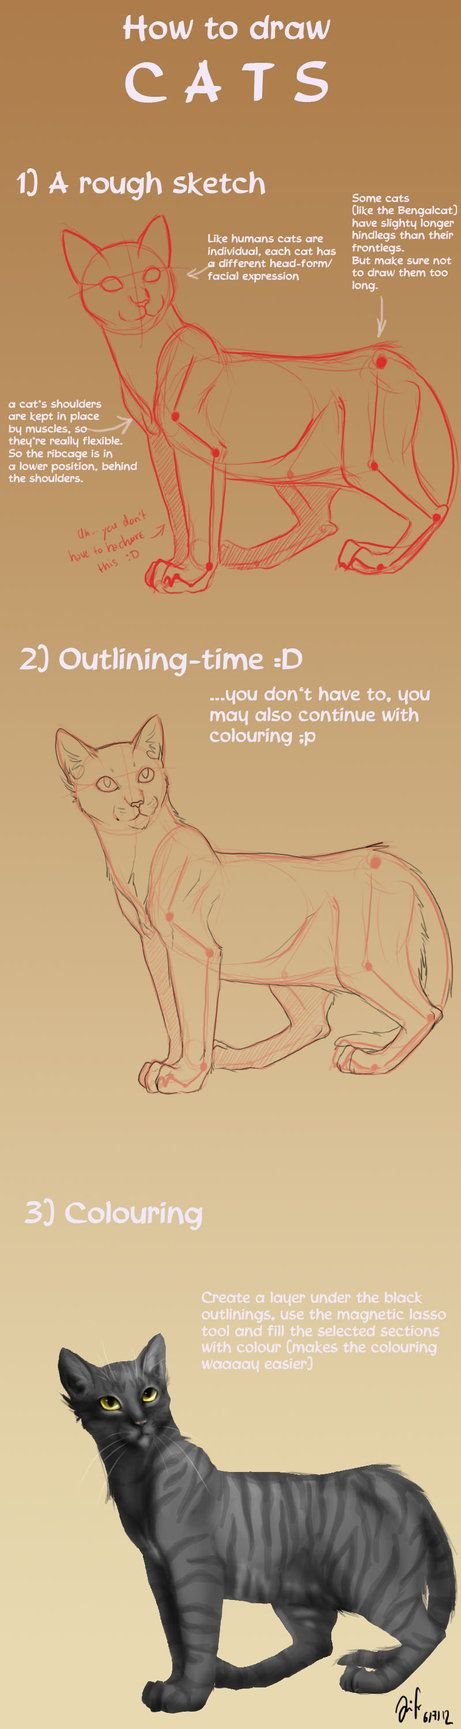 First Part Of The Promised Cat Tutorial How To Draw A Cat In